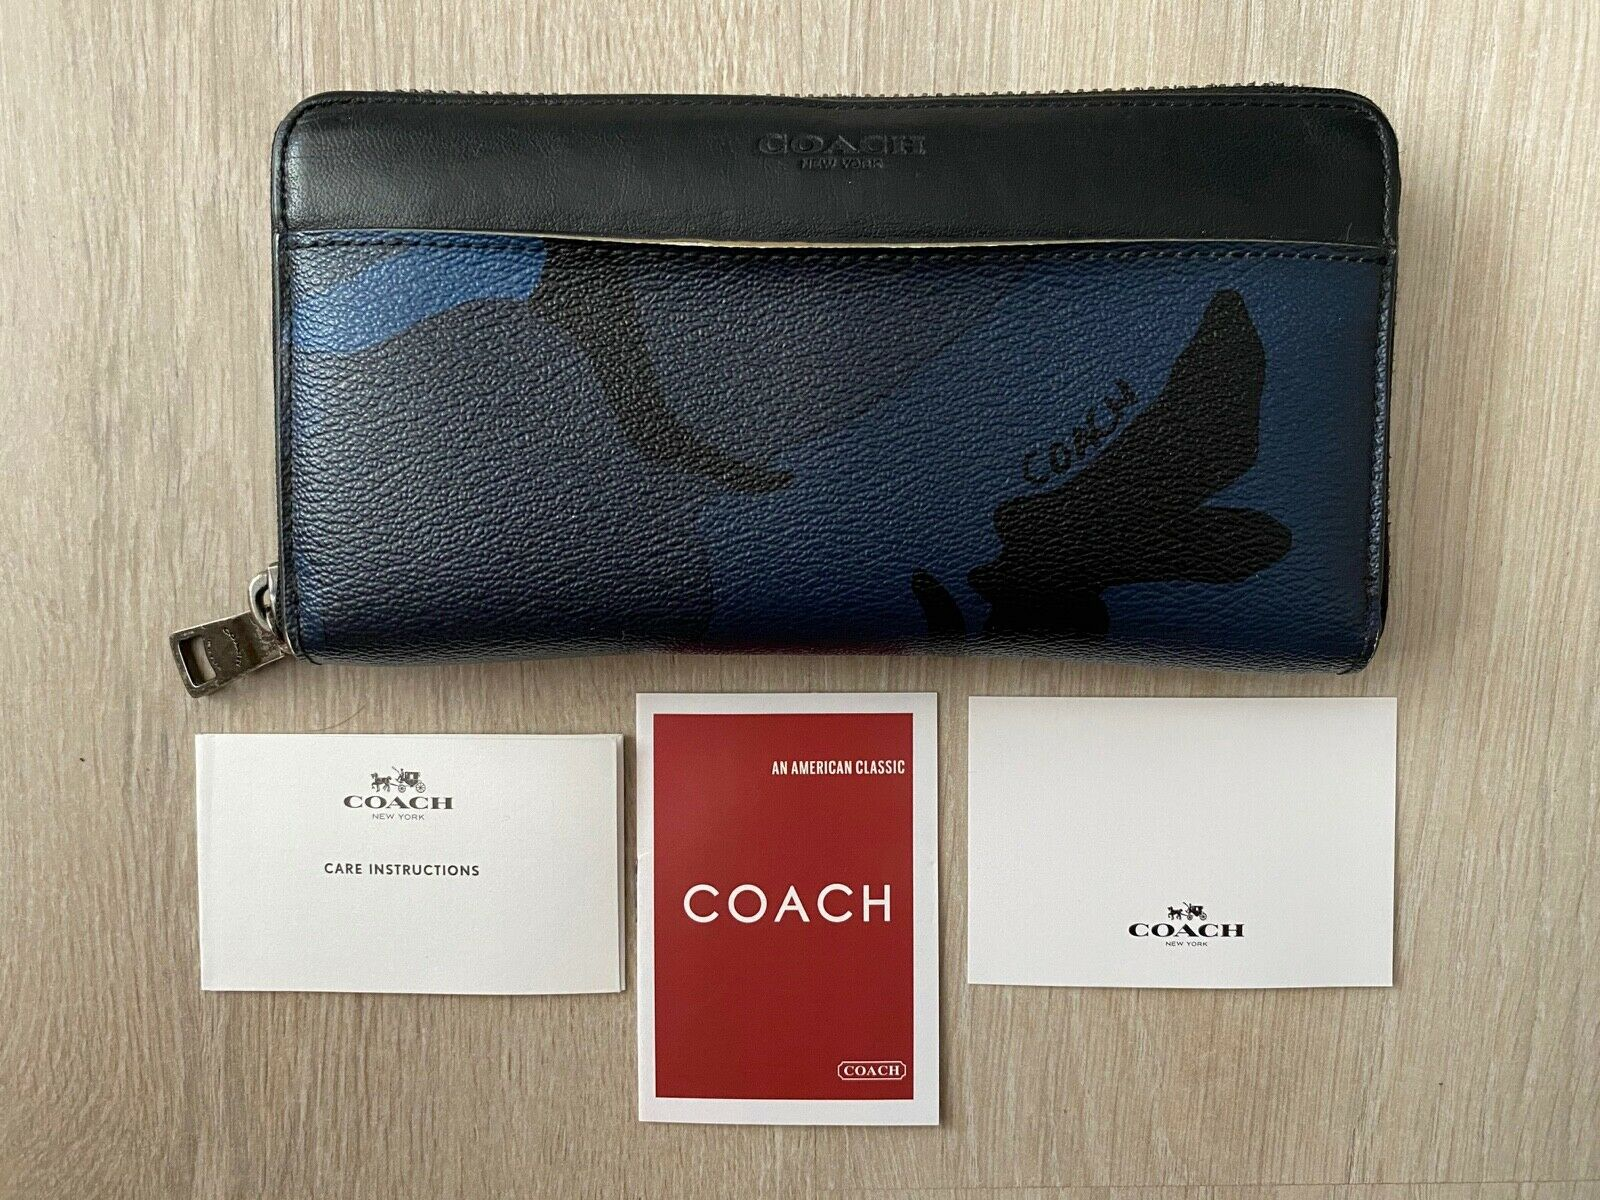 COACH Wild Beast Camo Military Blue Leather Zip Around Long Wallet Purse